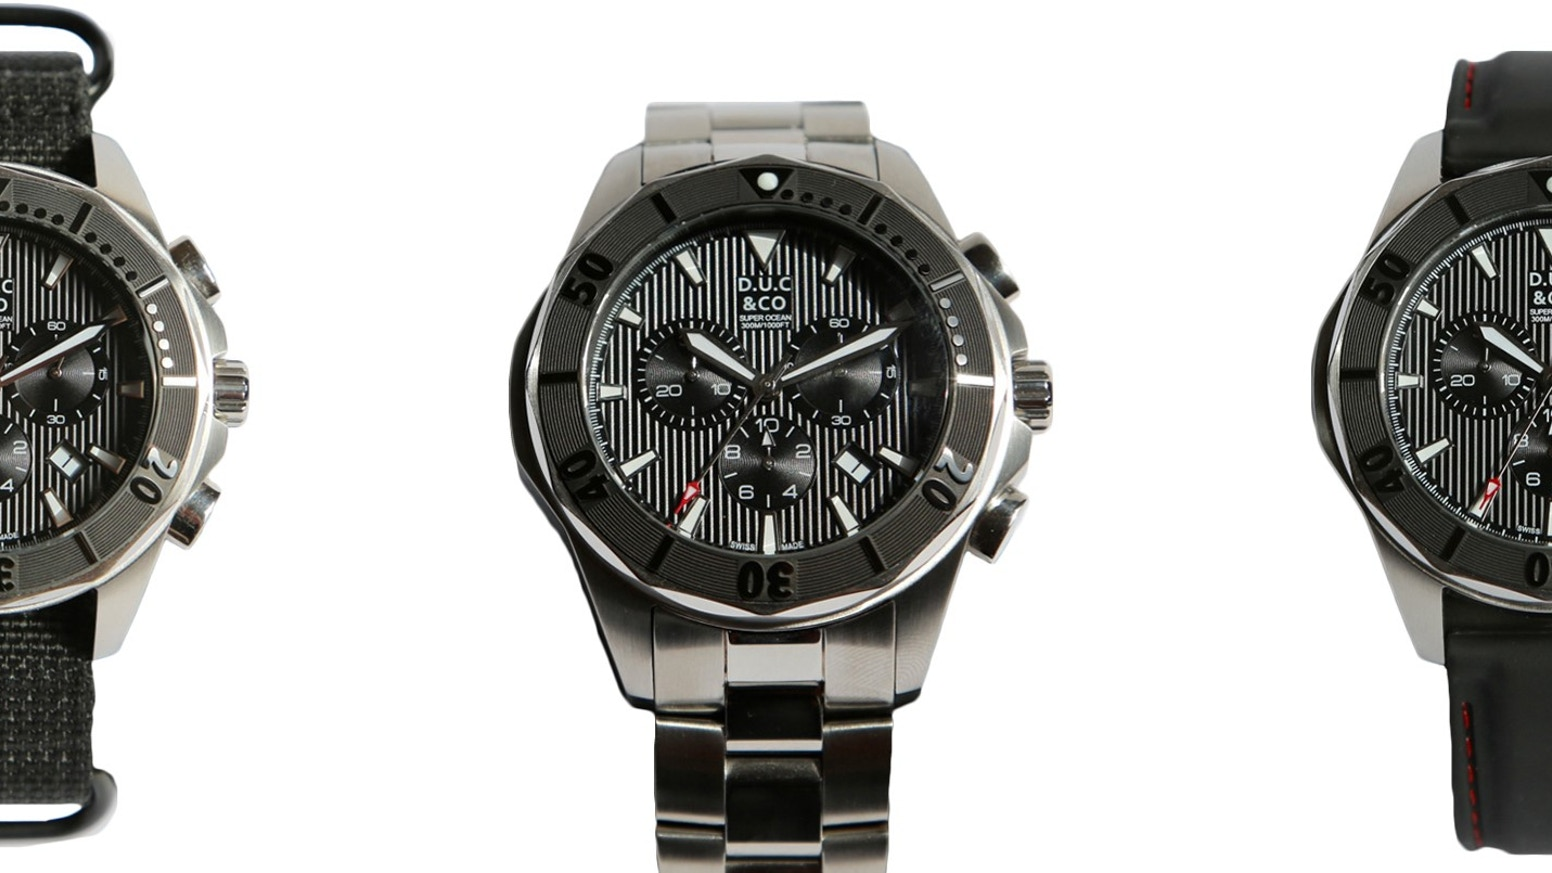 sporty on stainless sport originals for the band polyurethane watches watch this black pinterest steel out with adidas best images unisex check